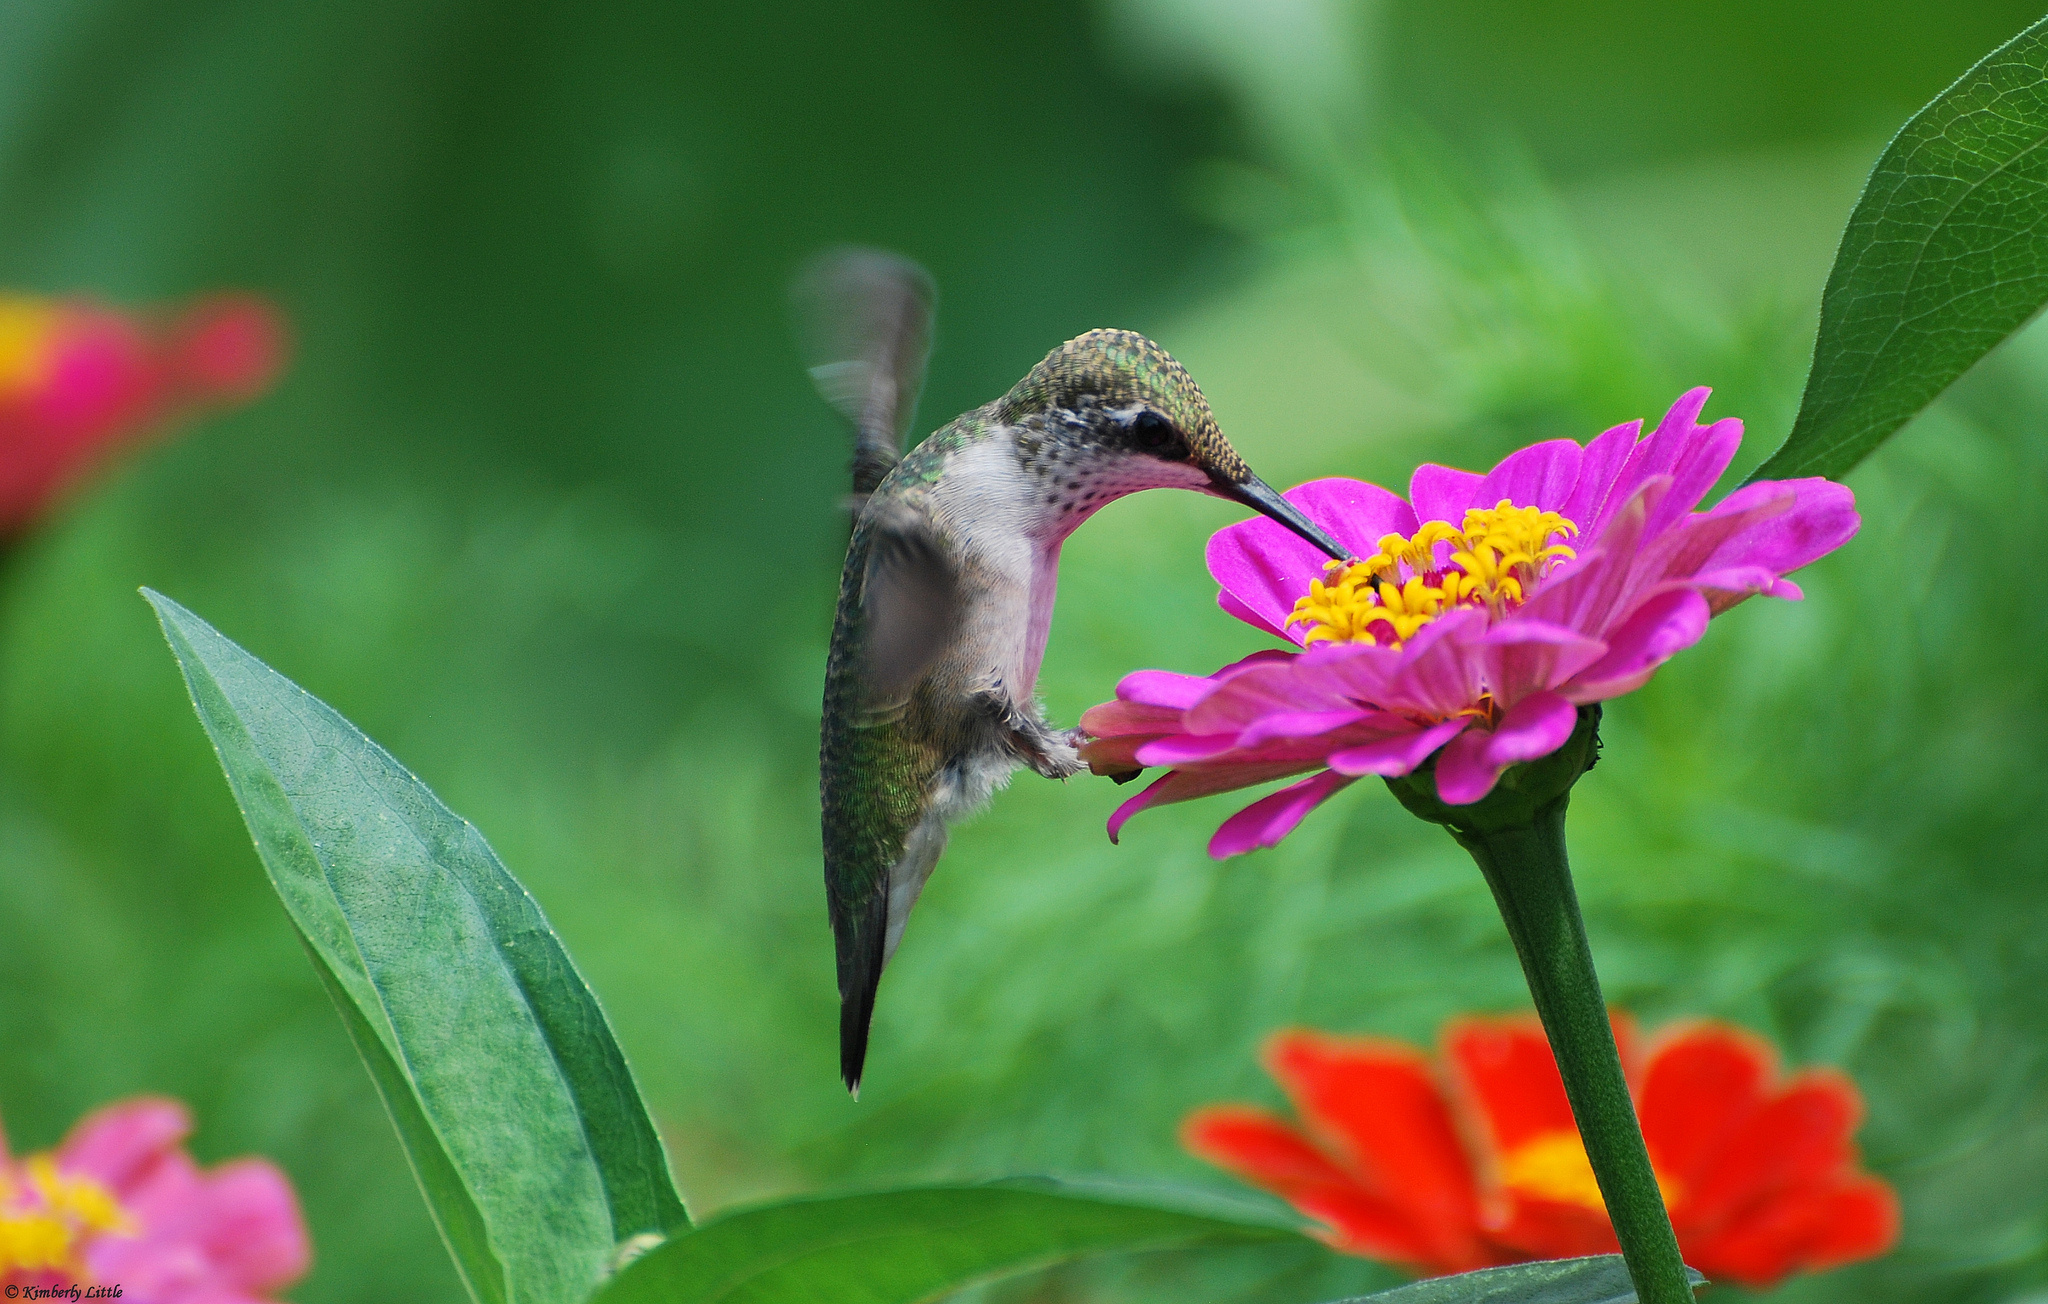 Flowers birds hummingbirds tsiniya pink wallpaper 2048x1304 169566 2048x1304